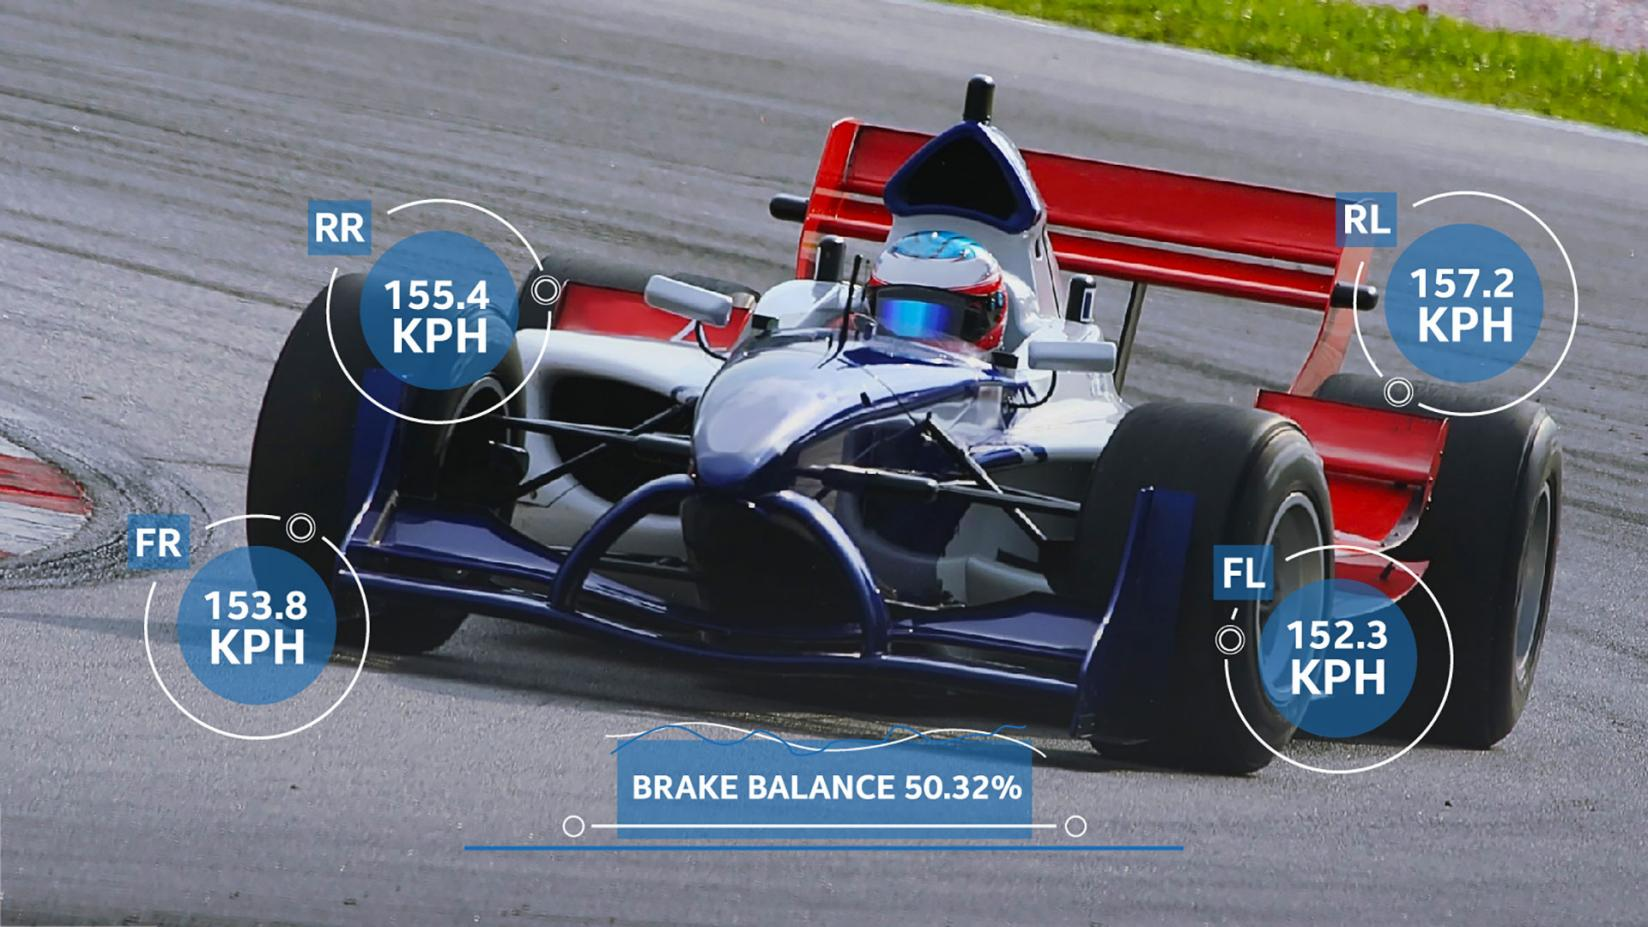 Image Source  https://www.intel.co.uk/content/www/uk/en/it-management/cloud-analytic-hub/big-data-powers-f1.html